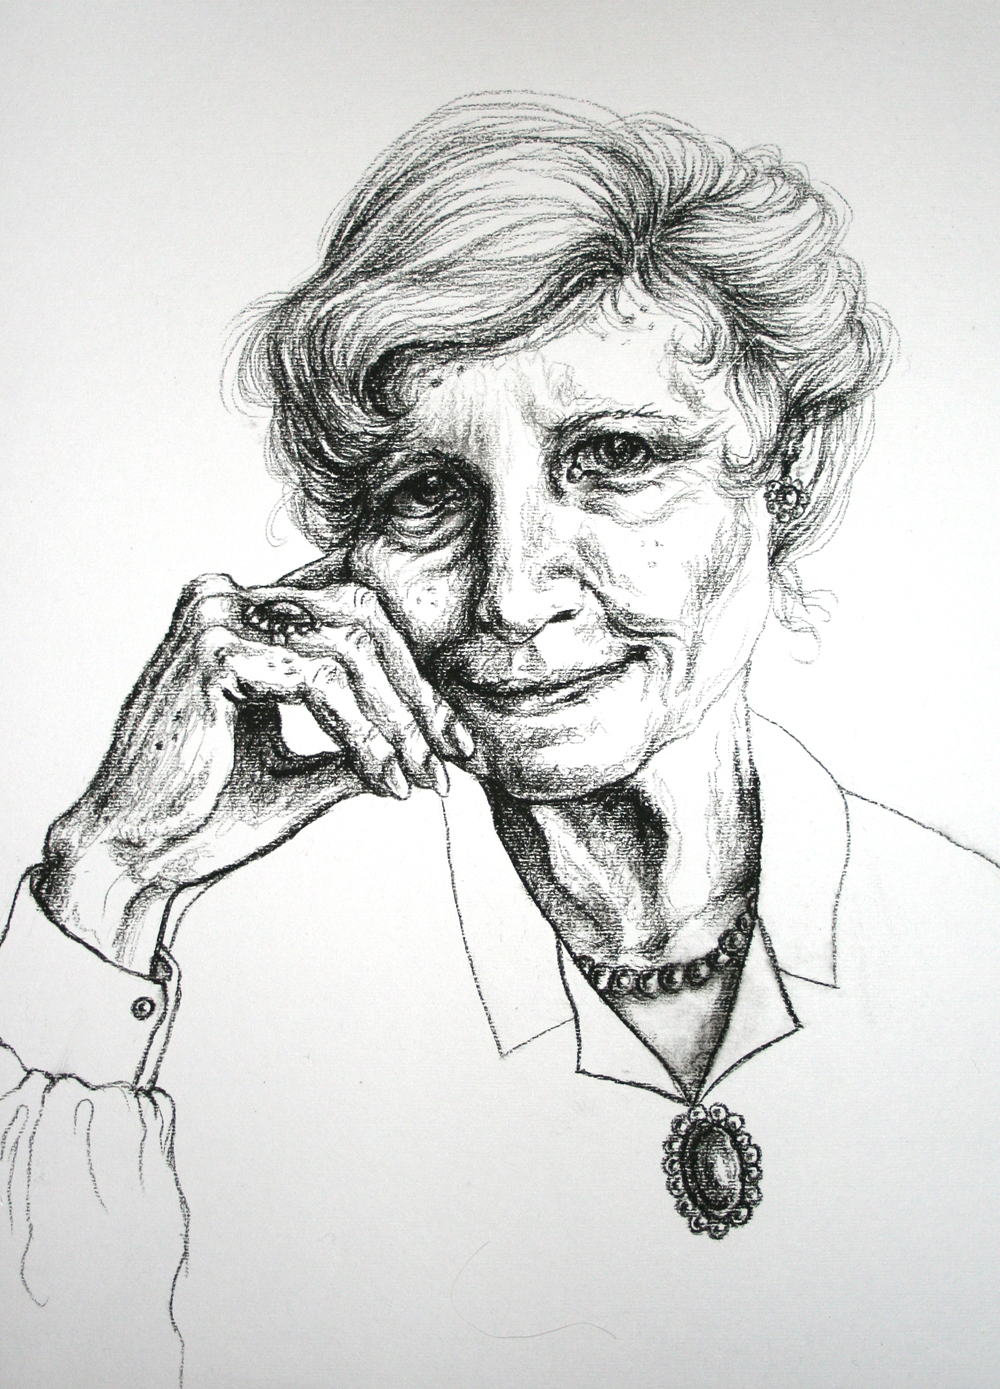 A pencil portrait of the author by the artist Emmi Smid